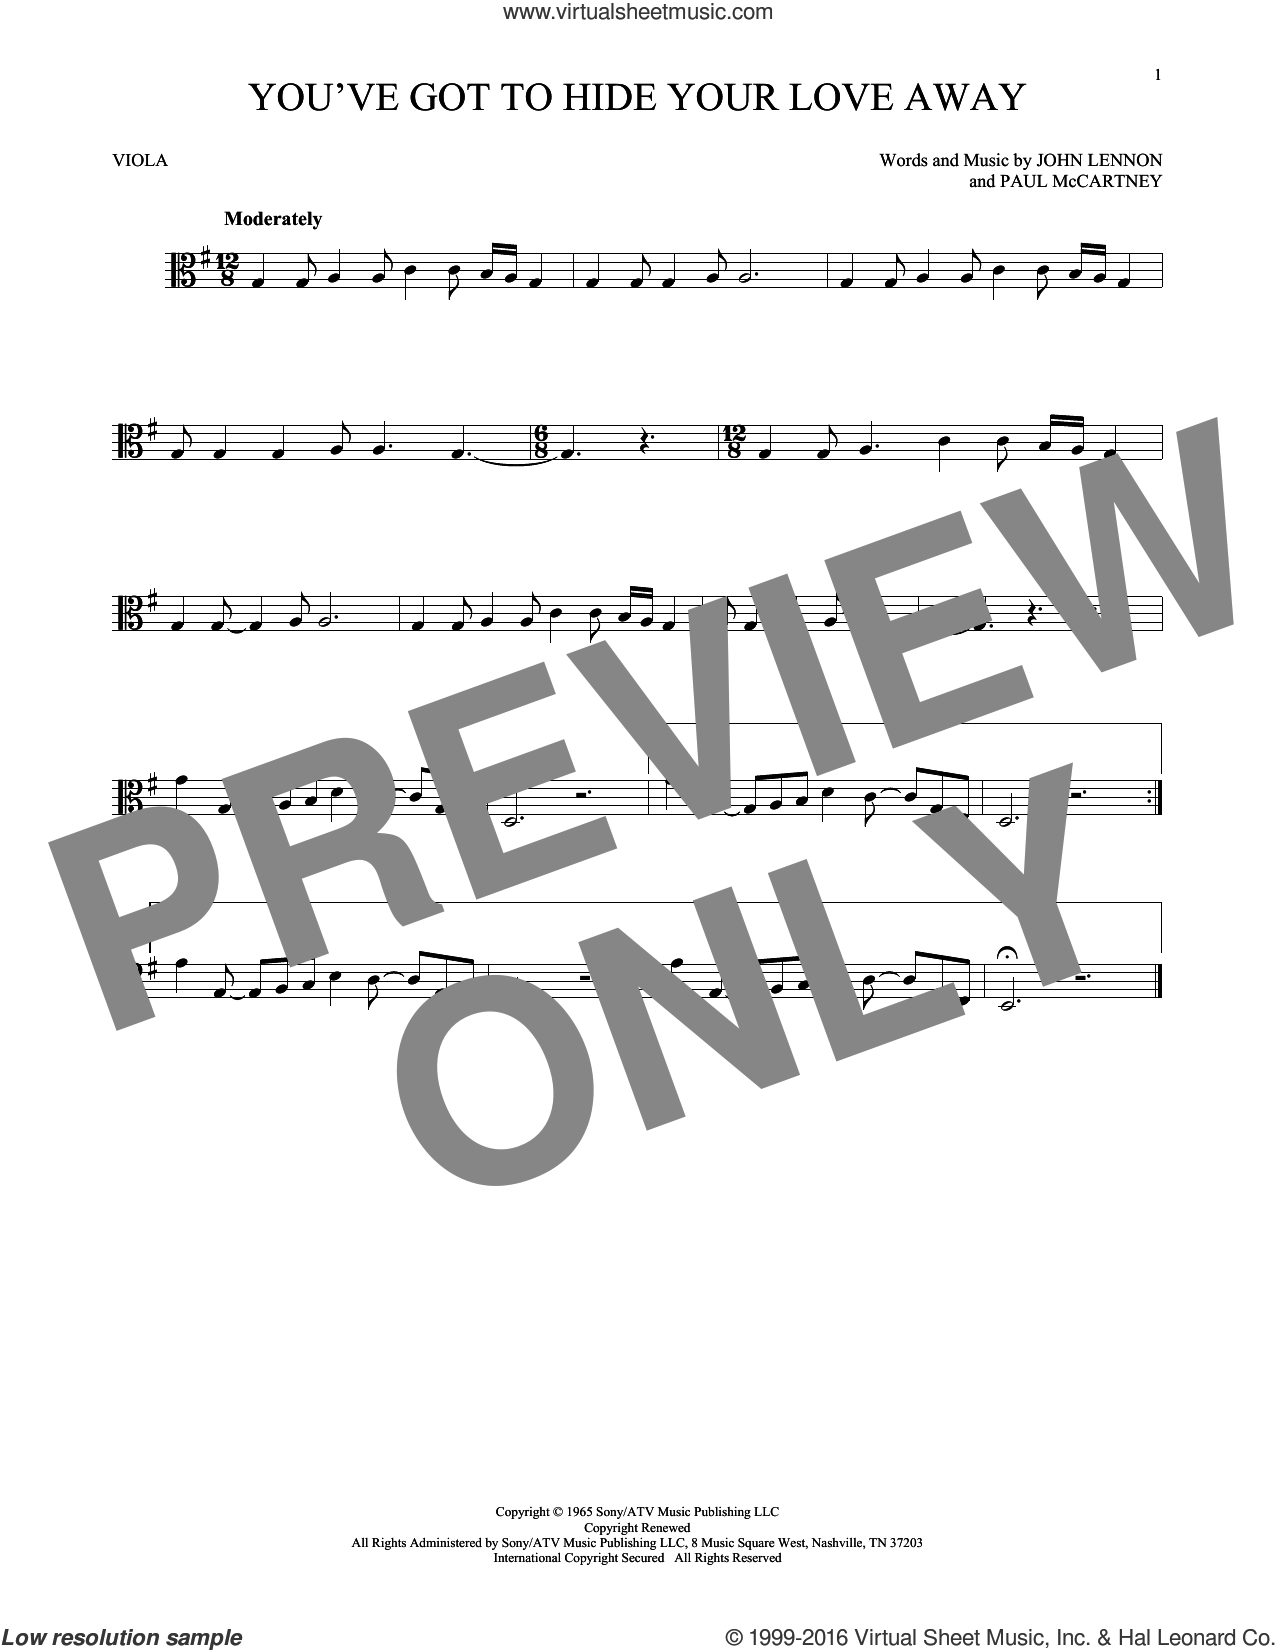 You've Got To Hide Your Love Away sheet music for viola solo by Paul McCartney, The Beatles and John Lennon. Score Image Preview.